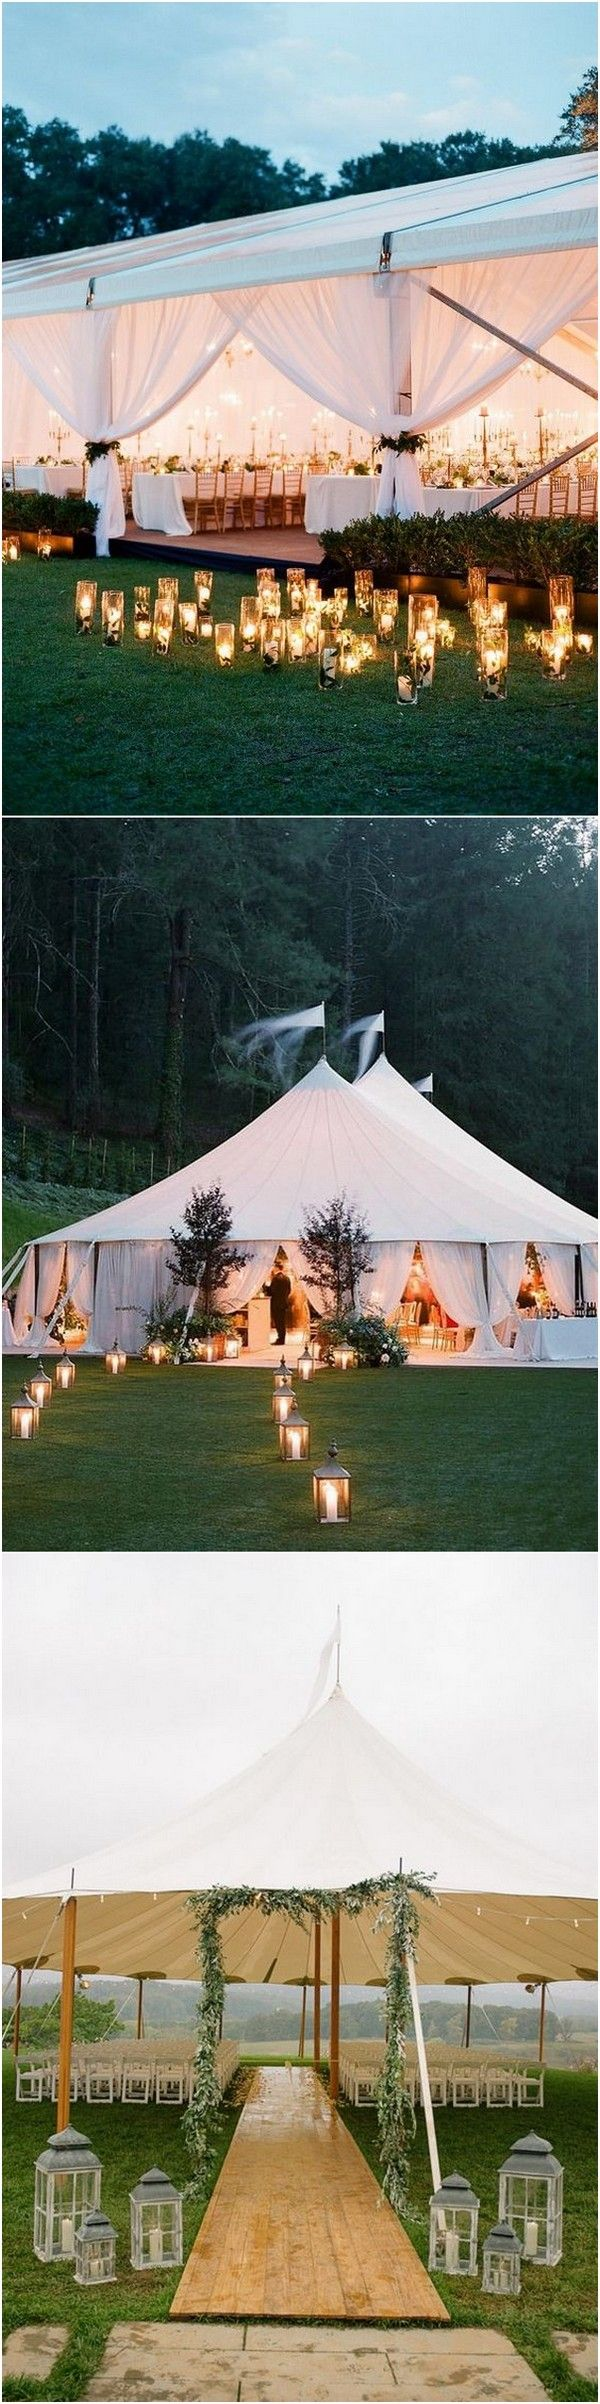 16 Gorgeous Wedding Entrance Decoration Ideas for Outdoor Tent Weddings